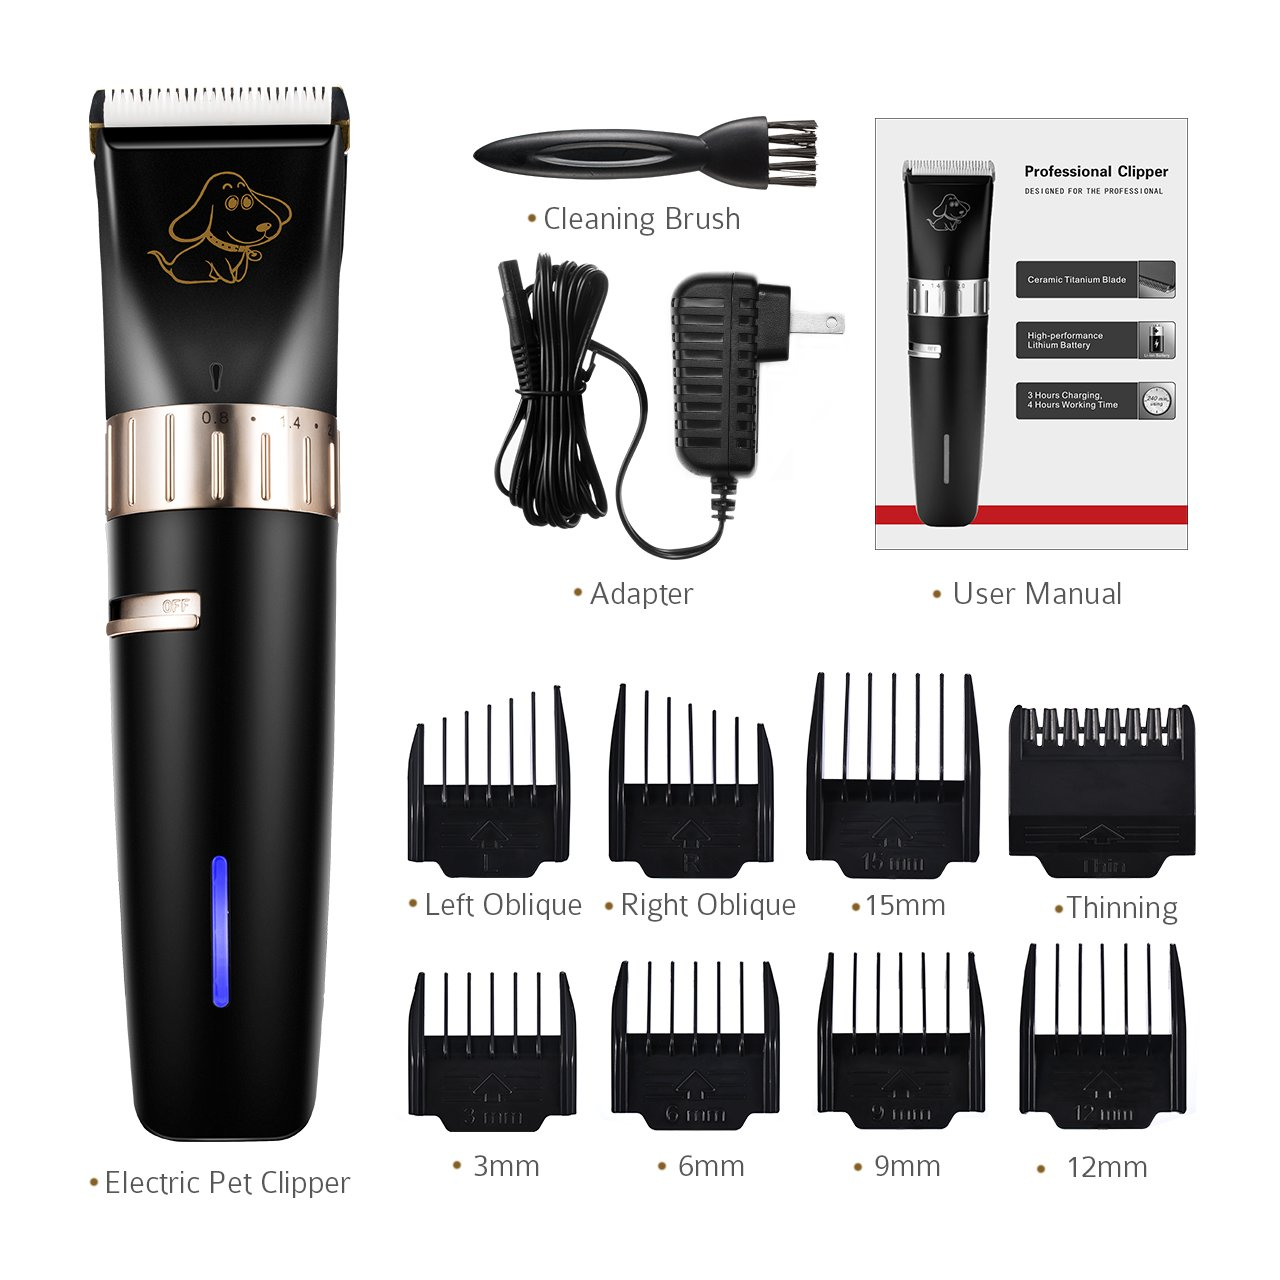 OMORC Professional Dog Clippers for Thick Coats, Quite Electric Pet Hair Trimmer with 4-Hour Cordless Operating, Cat Grooming Kit with 8 Guides Comb & Stainless Steel Sharp Blades